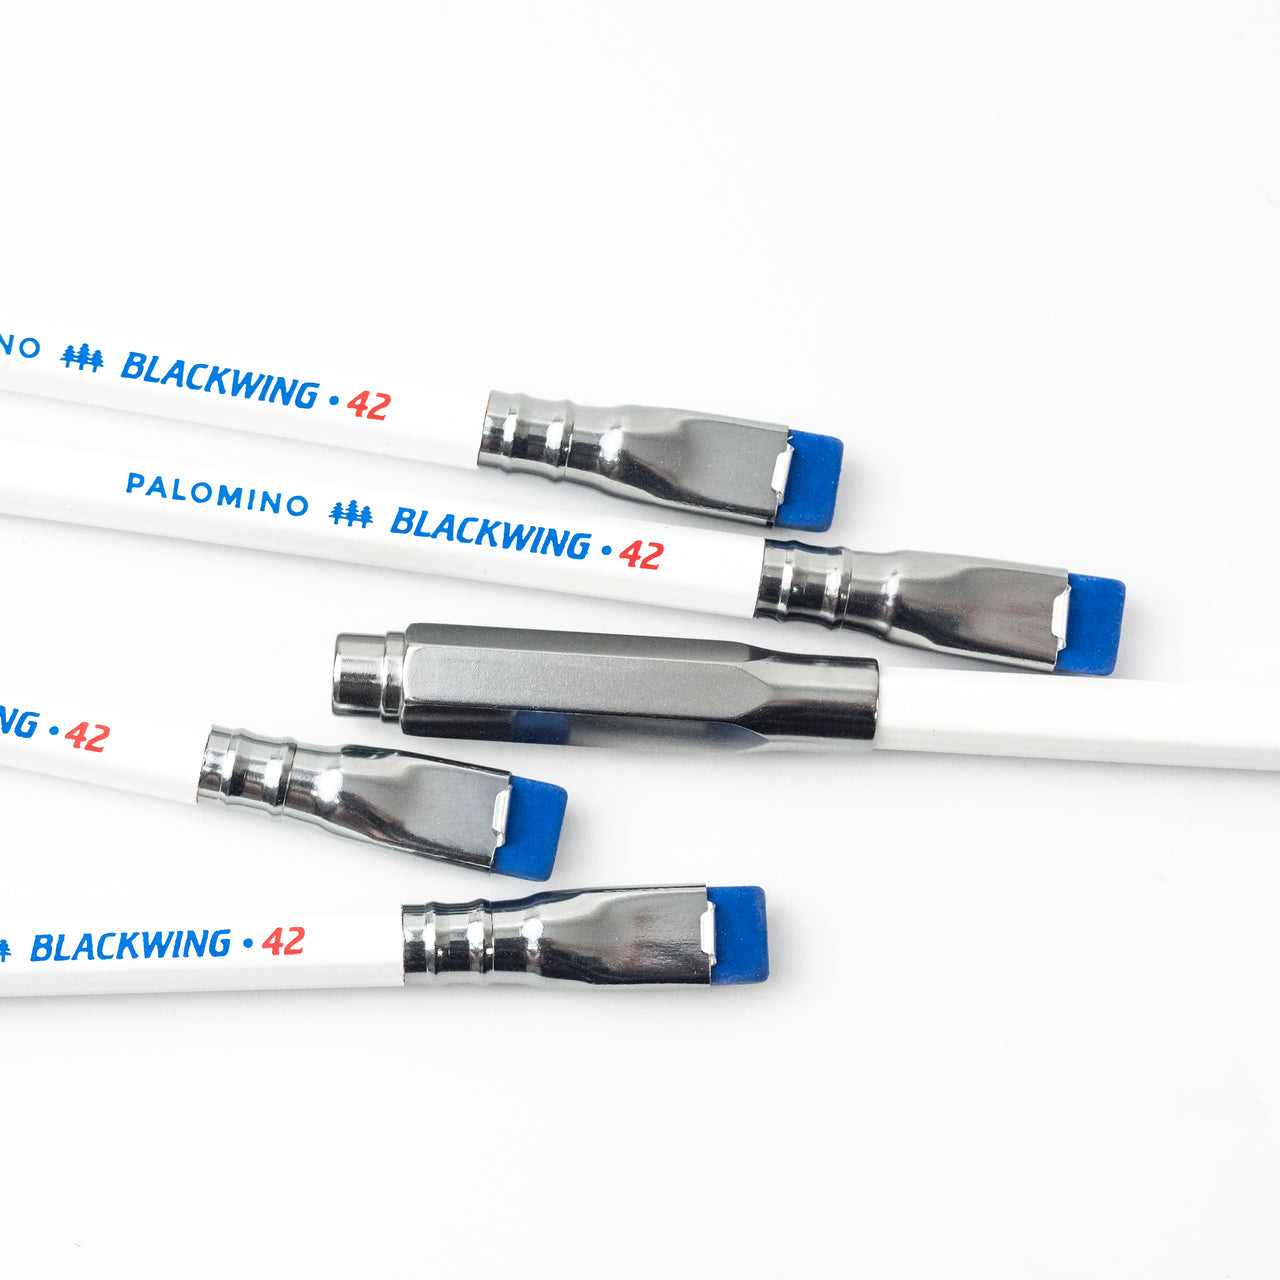 The Blackwing 42 features our balanced graphite, white barrel, blue imprint and eraser, road gray ferrule,  and iconic red 42.